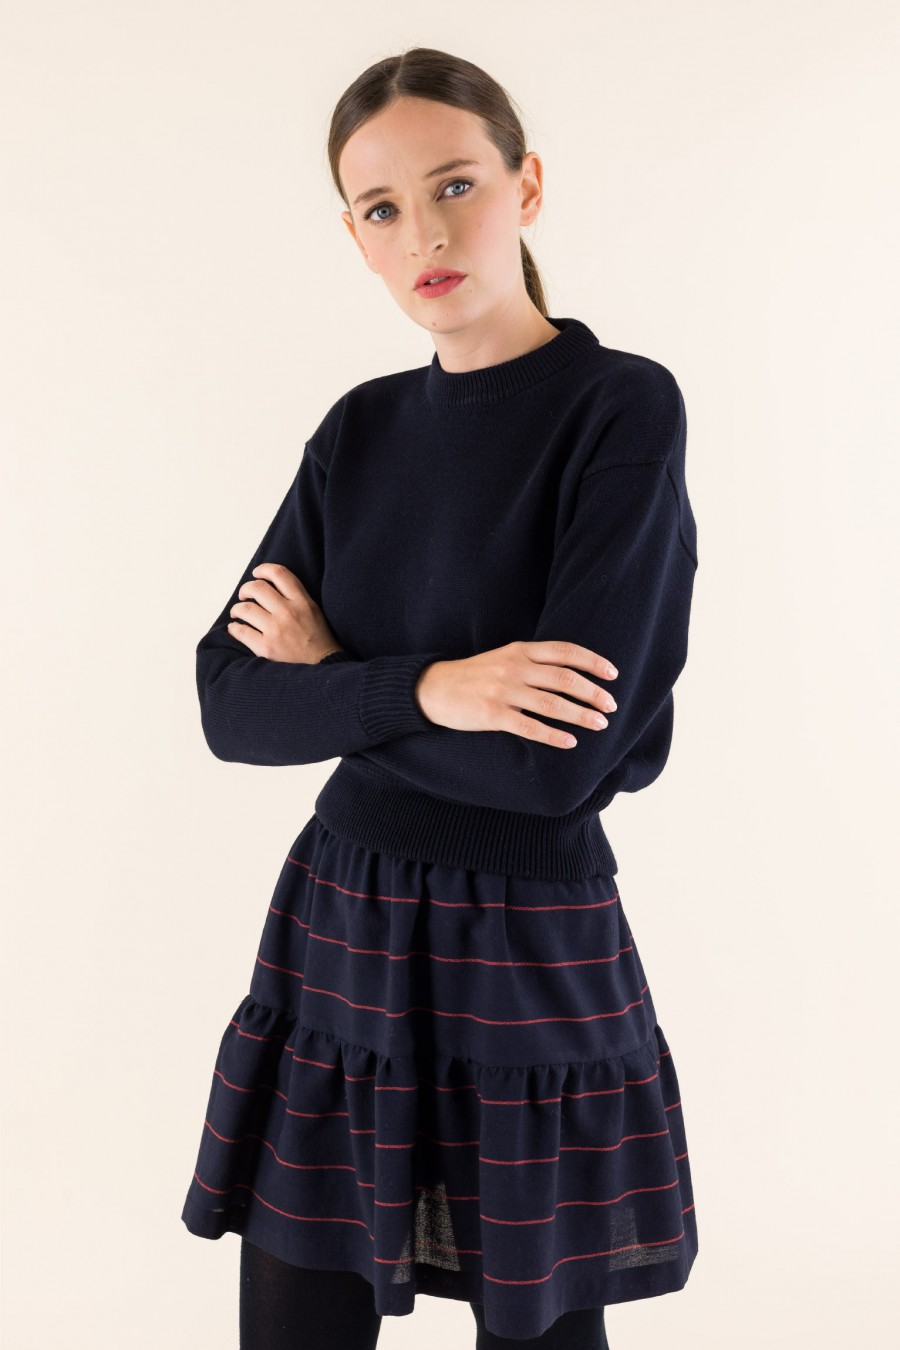 Black sweater with wide sleeves